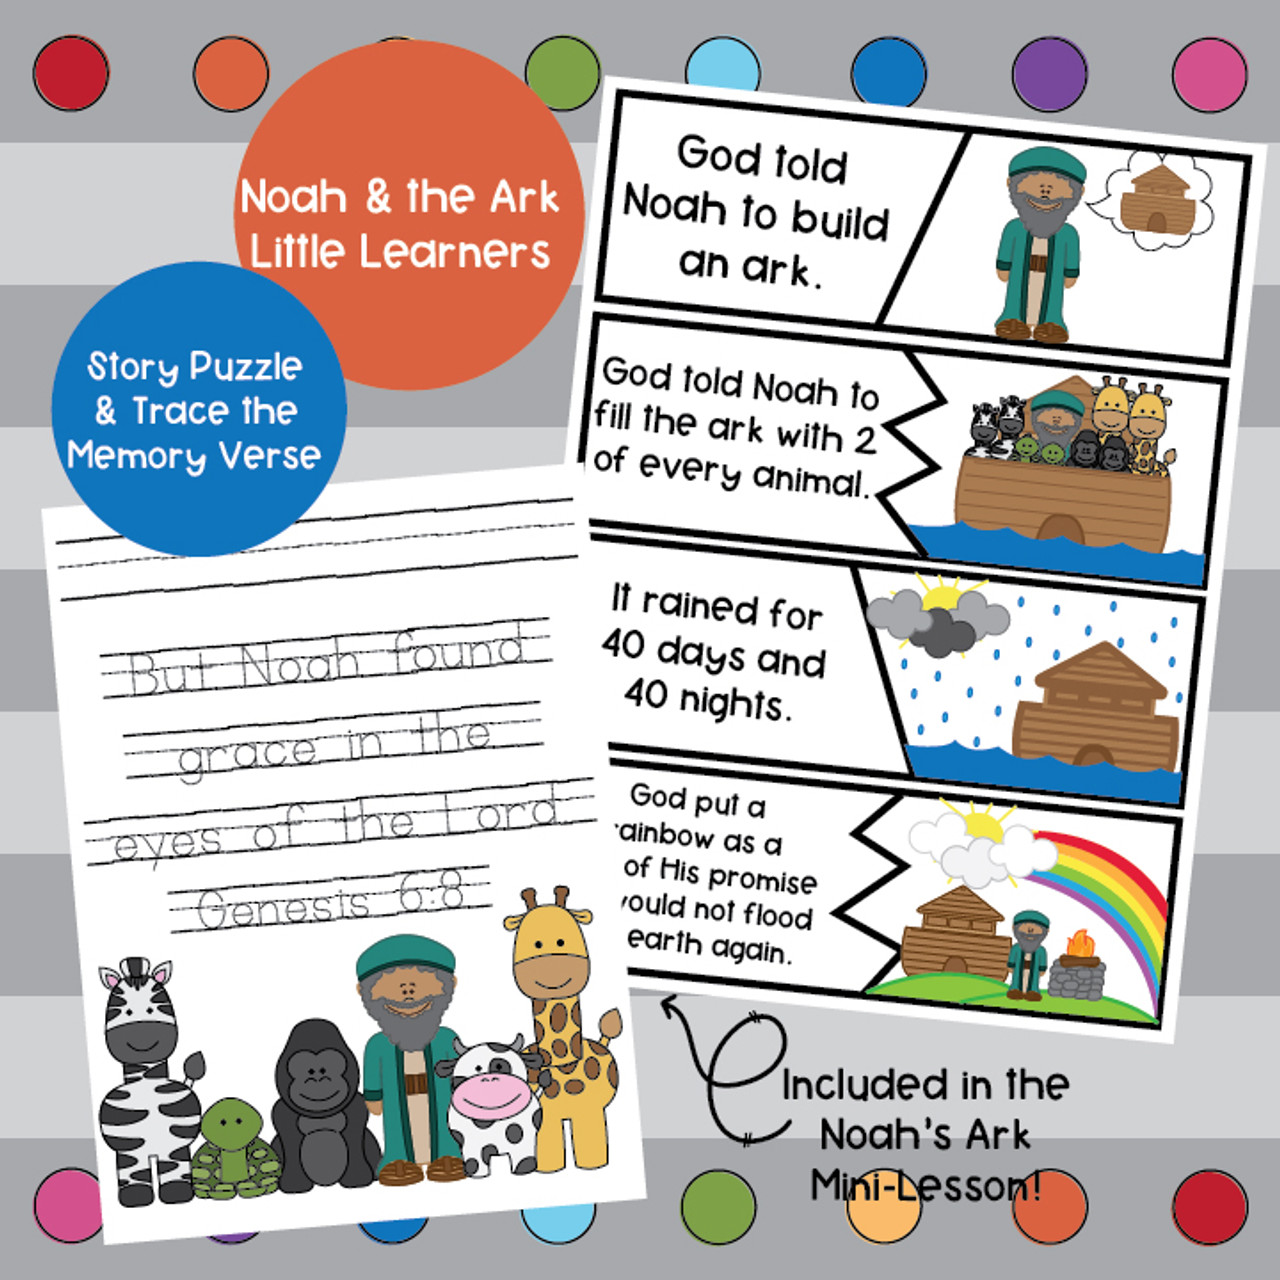 Noah and the Ark Activity Pack- Little Learners Bible Lesson & Activity Packet